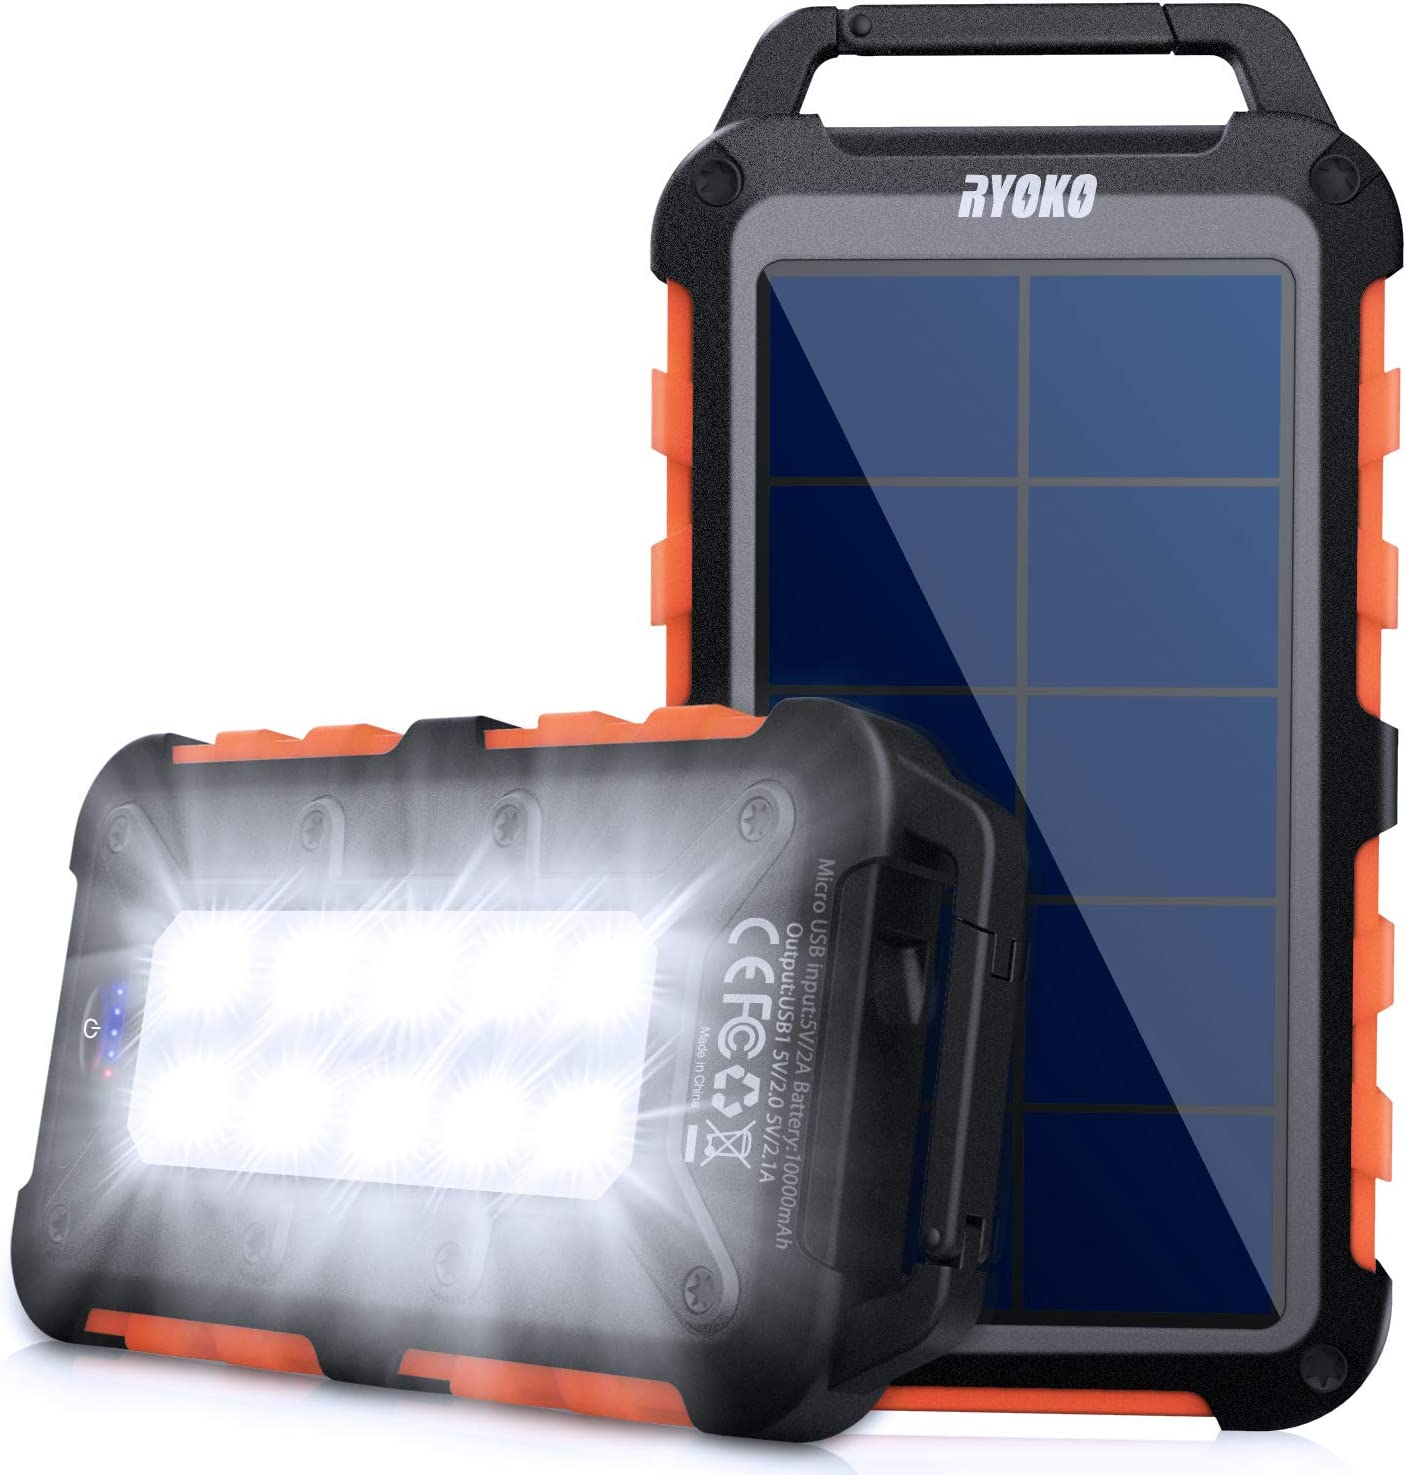 Solar Power Bank 10000mah, Ryoko Portable Solar Charger Ipx4 Waterproof Phone External Battery for Hiking Camping Backpacking, Dual Fast Charger for Cell Phone, LED Source of Dark Lifesaver (Orange)